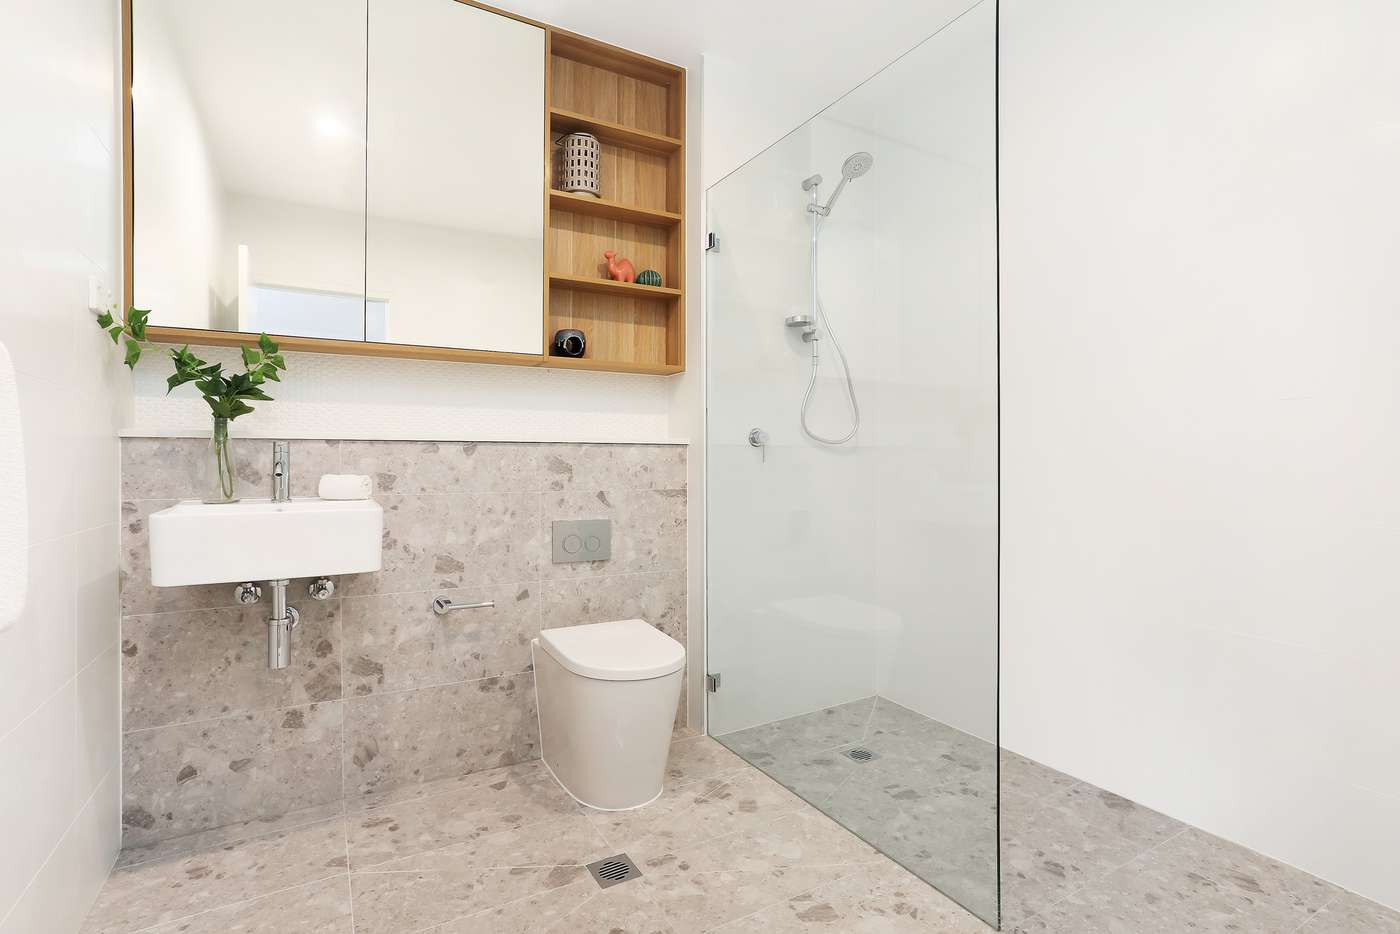 Sixth view of Homely apartment listing, 501/2 Murrell Street, Ashfield NSW 2131